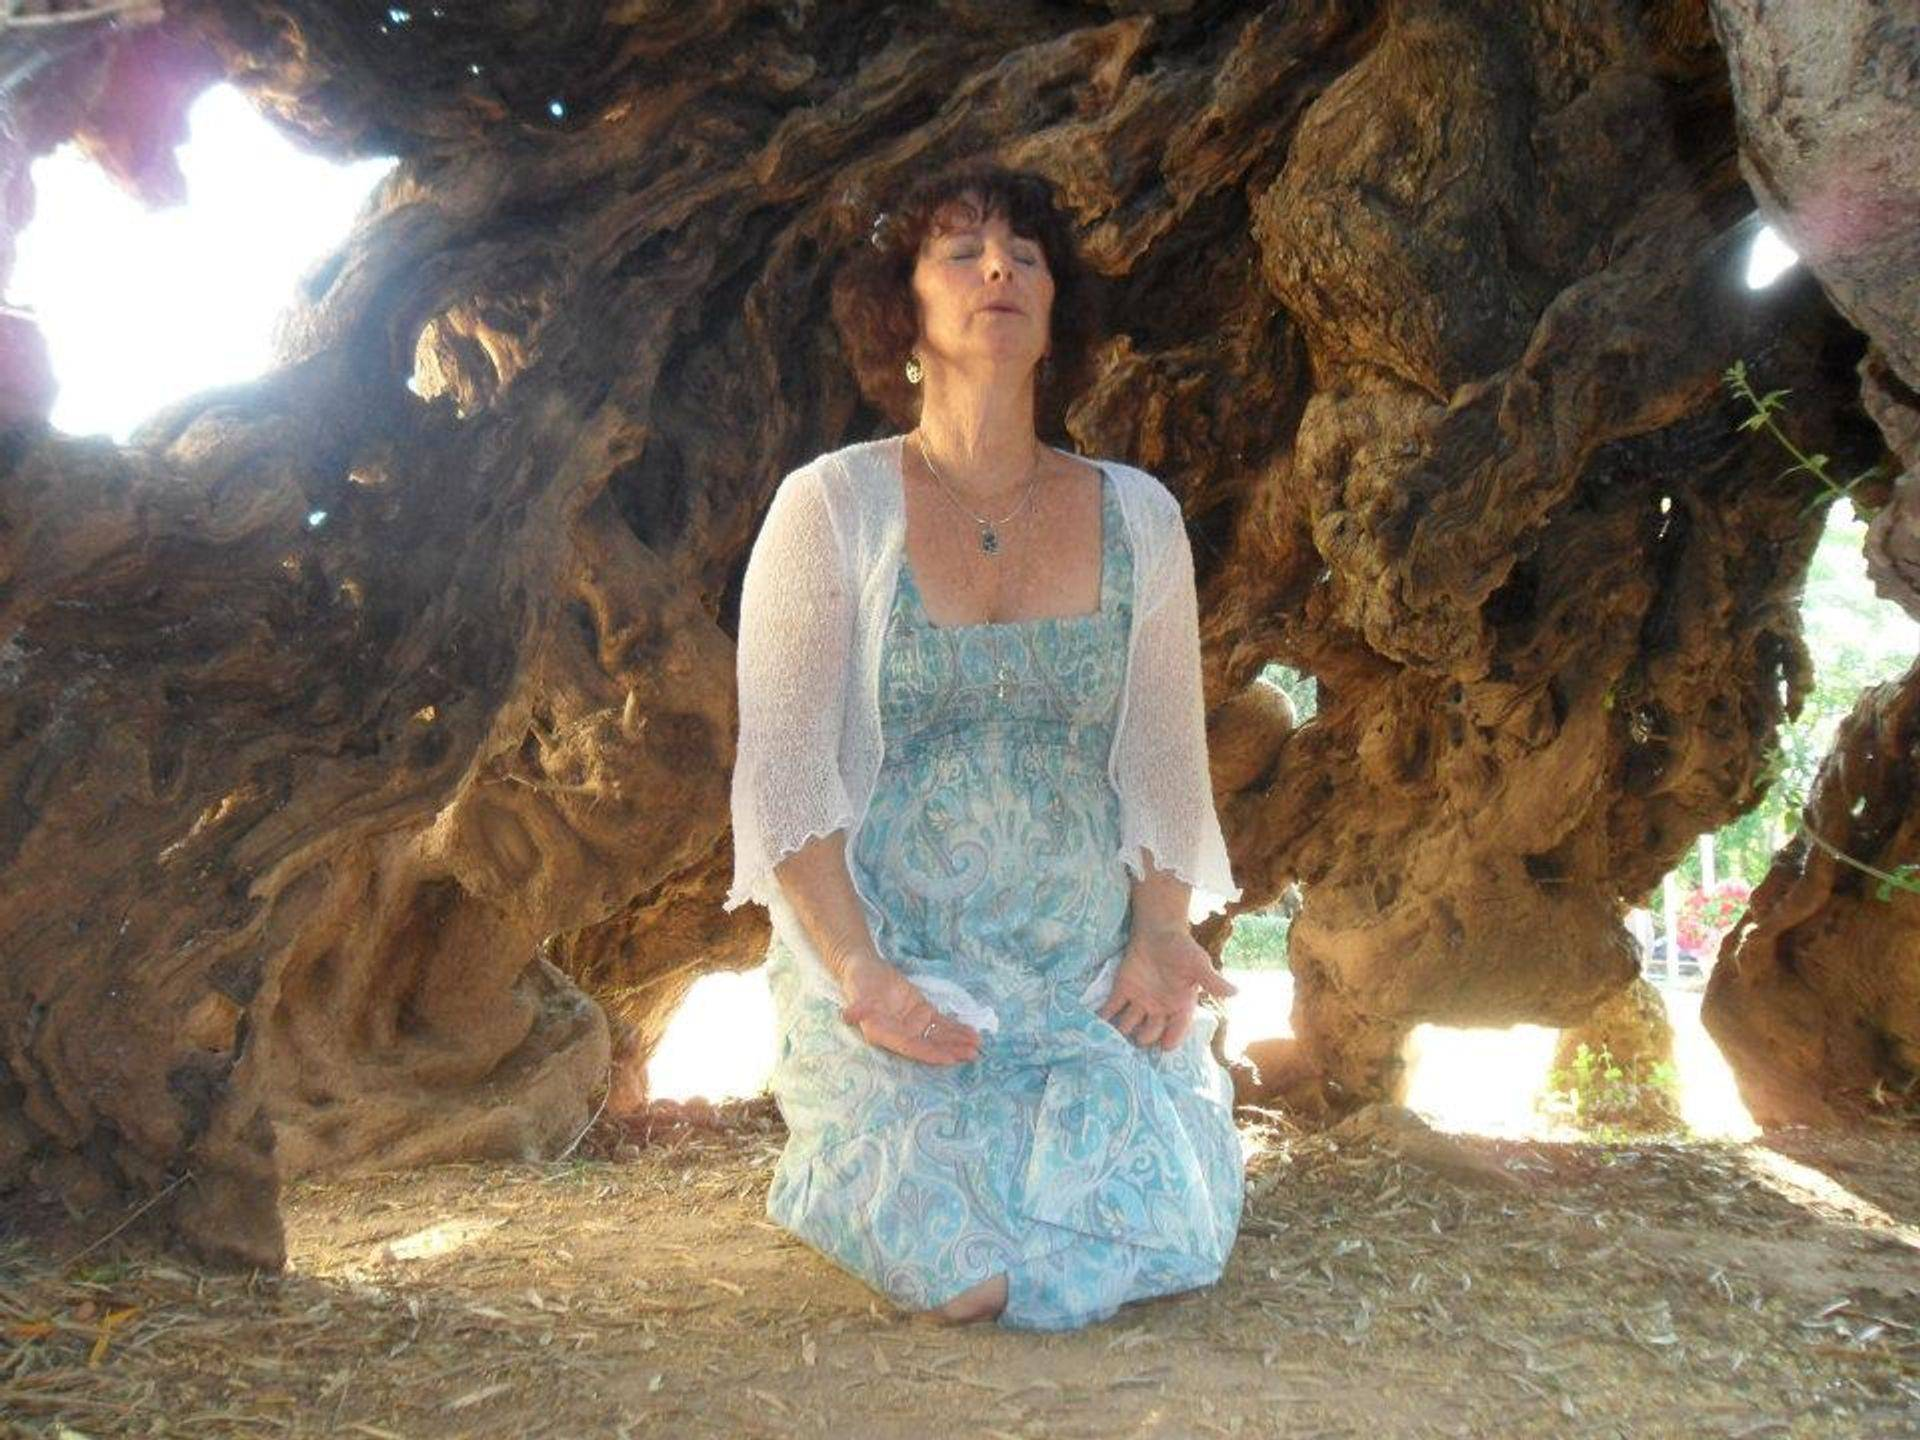 ChristinA of LUXOR Light Ascension channeling Sacred Sound inside the World's Oldest Olive Tree in Crete